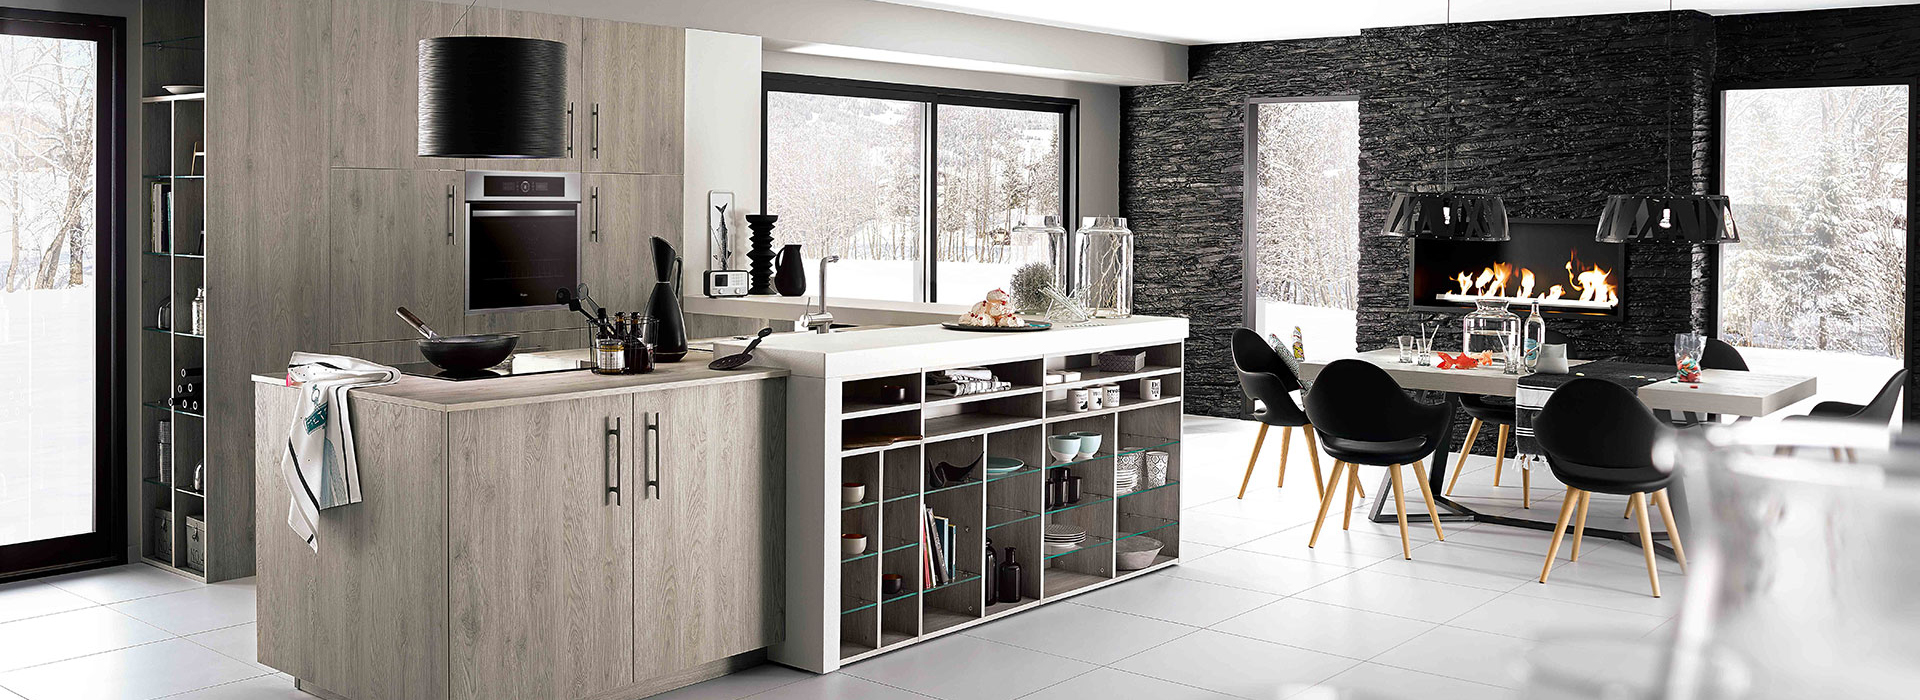 r novation de cuisine cuisiniste mobalpa saint laurent. Black Bedroom Furniture Sets. Home Design Ideas